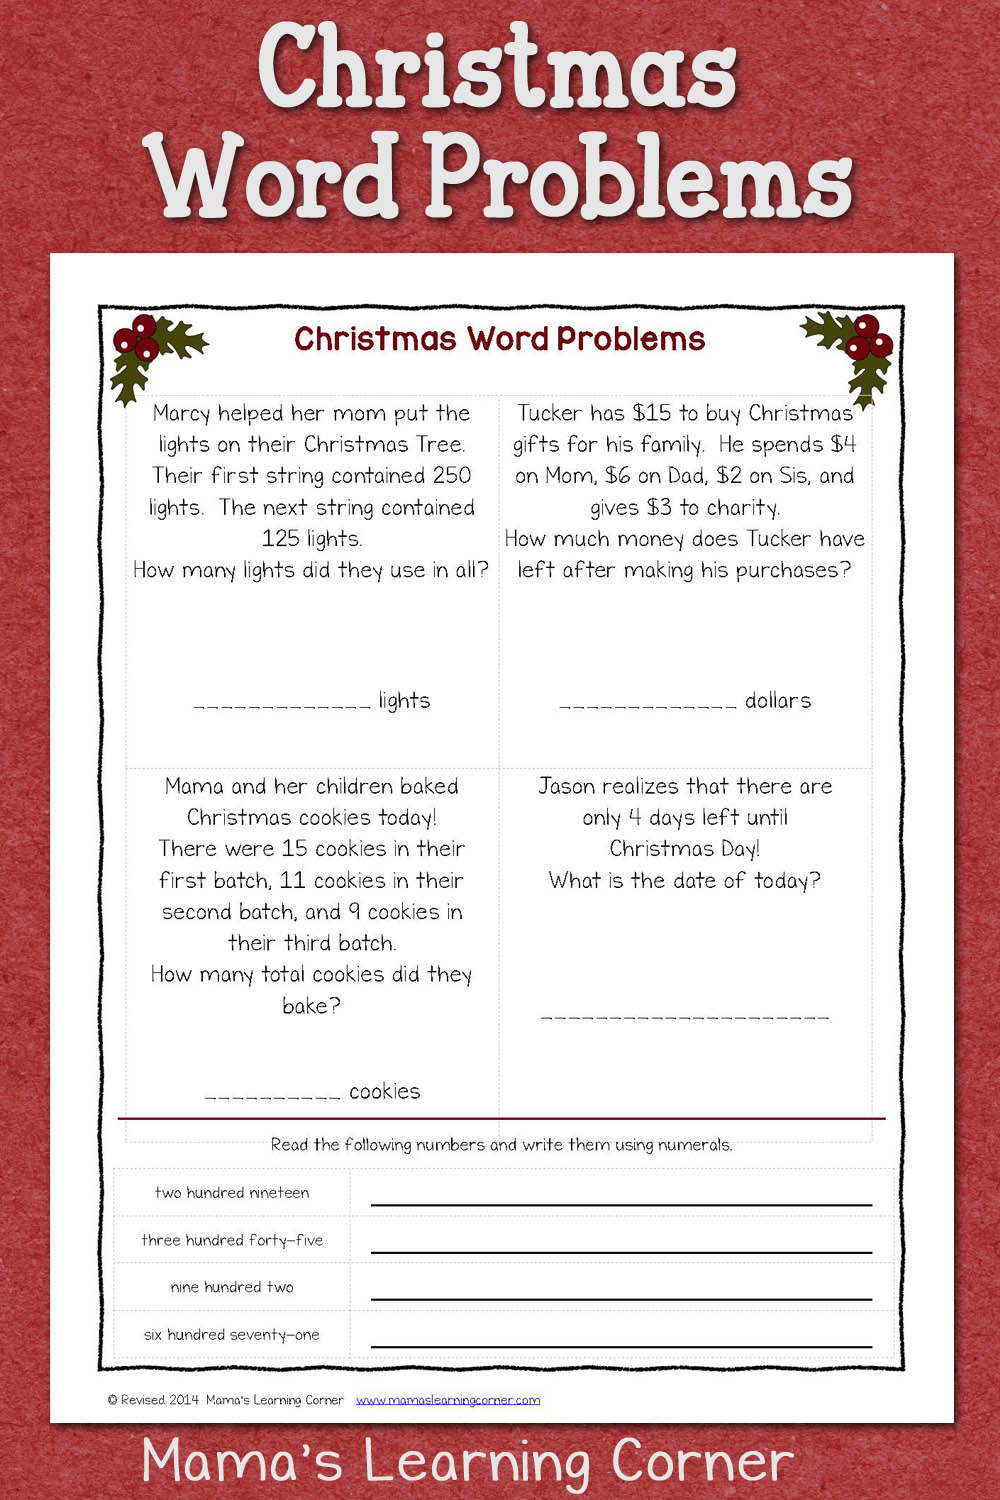 medium resolution of Christmas Word Problems - Mamas Learning Corner